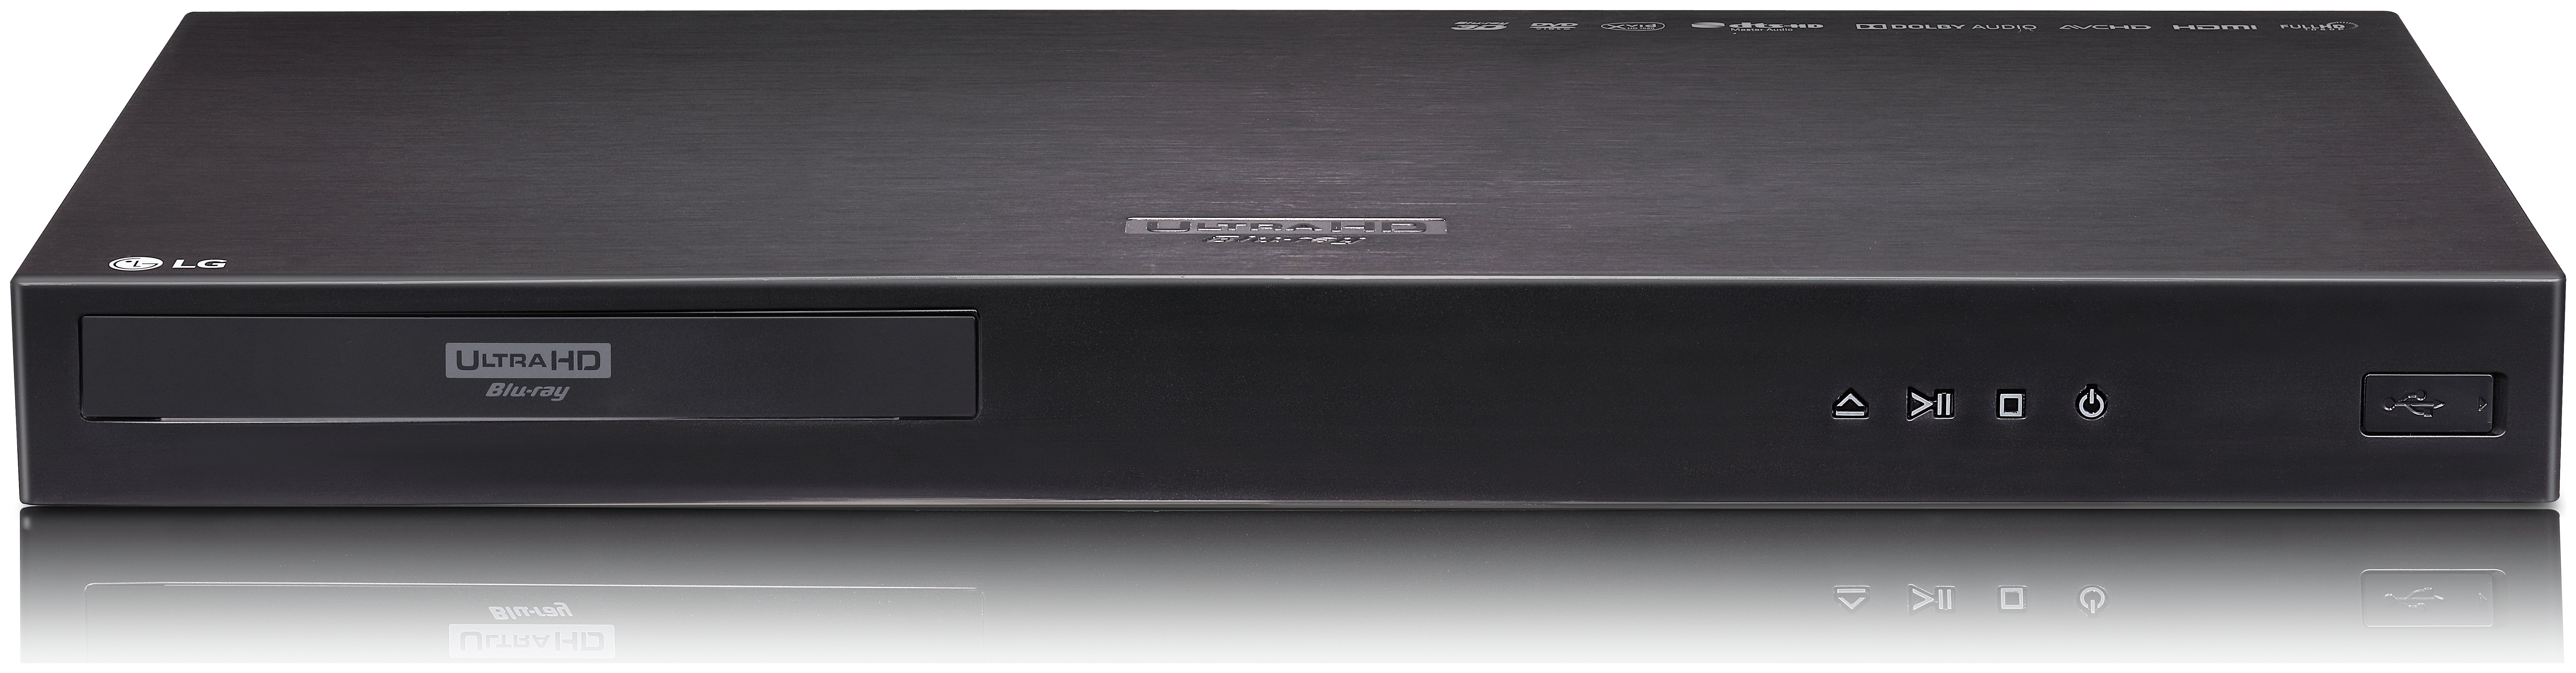 Image of LG UP970 4K UHD Blu-ray/DVD Player with HDR Compatibility